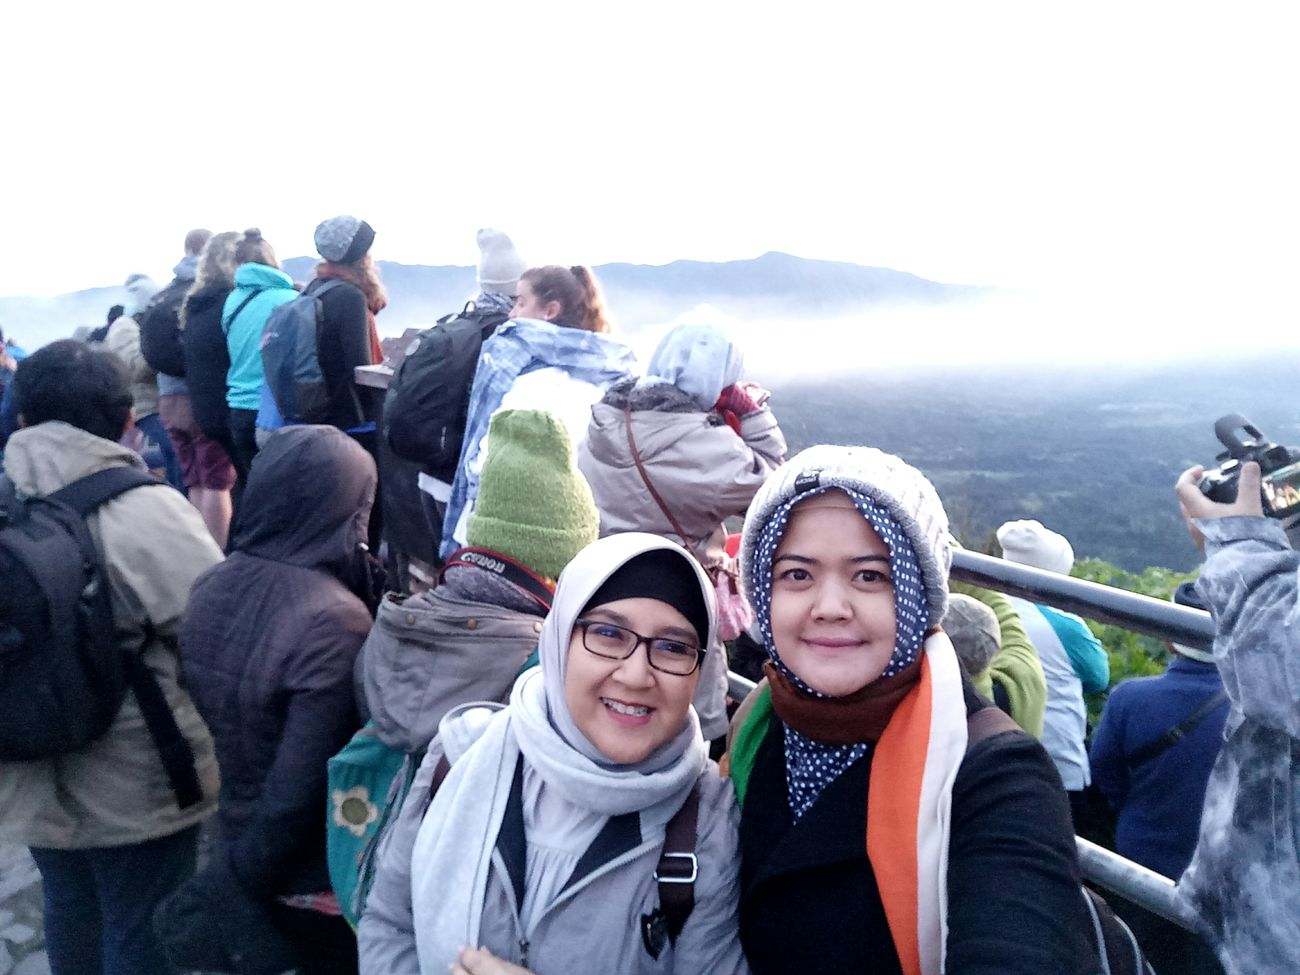 Wonderful Wonderfulindonesia Wonderful Place Wonderfull ✌🏼️❤️🌞 Vacations Friendship Togetherness Warm Clothing Fun Adult Adults Only Outdoors People Young Adult Young Women Crowd Sky Bonding Cheerful Day Vacations Unity